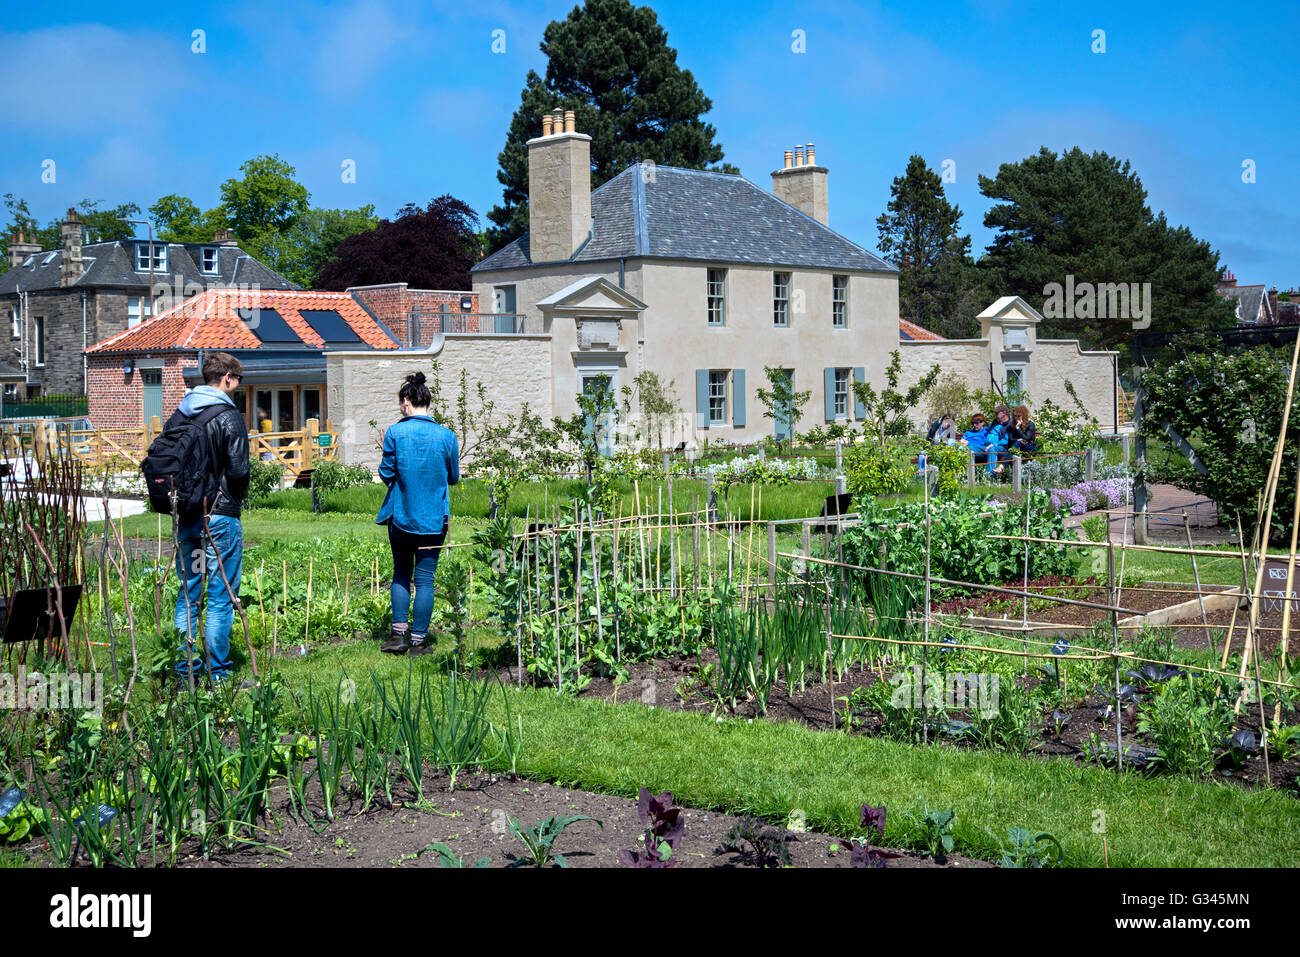 Visitors to the Royal Botanic Gardens in Edinburgh inspect herb and vegetable plots with the Botanic Cottage in - Stock Image